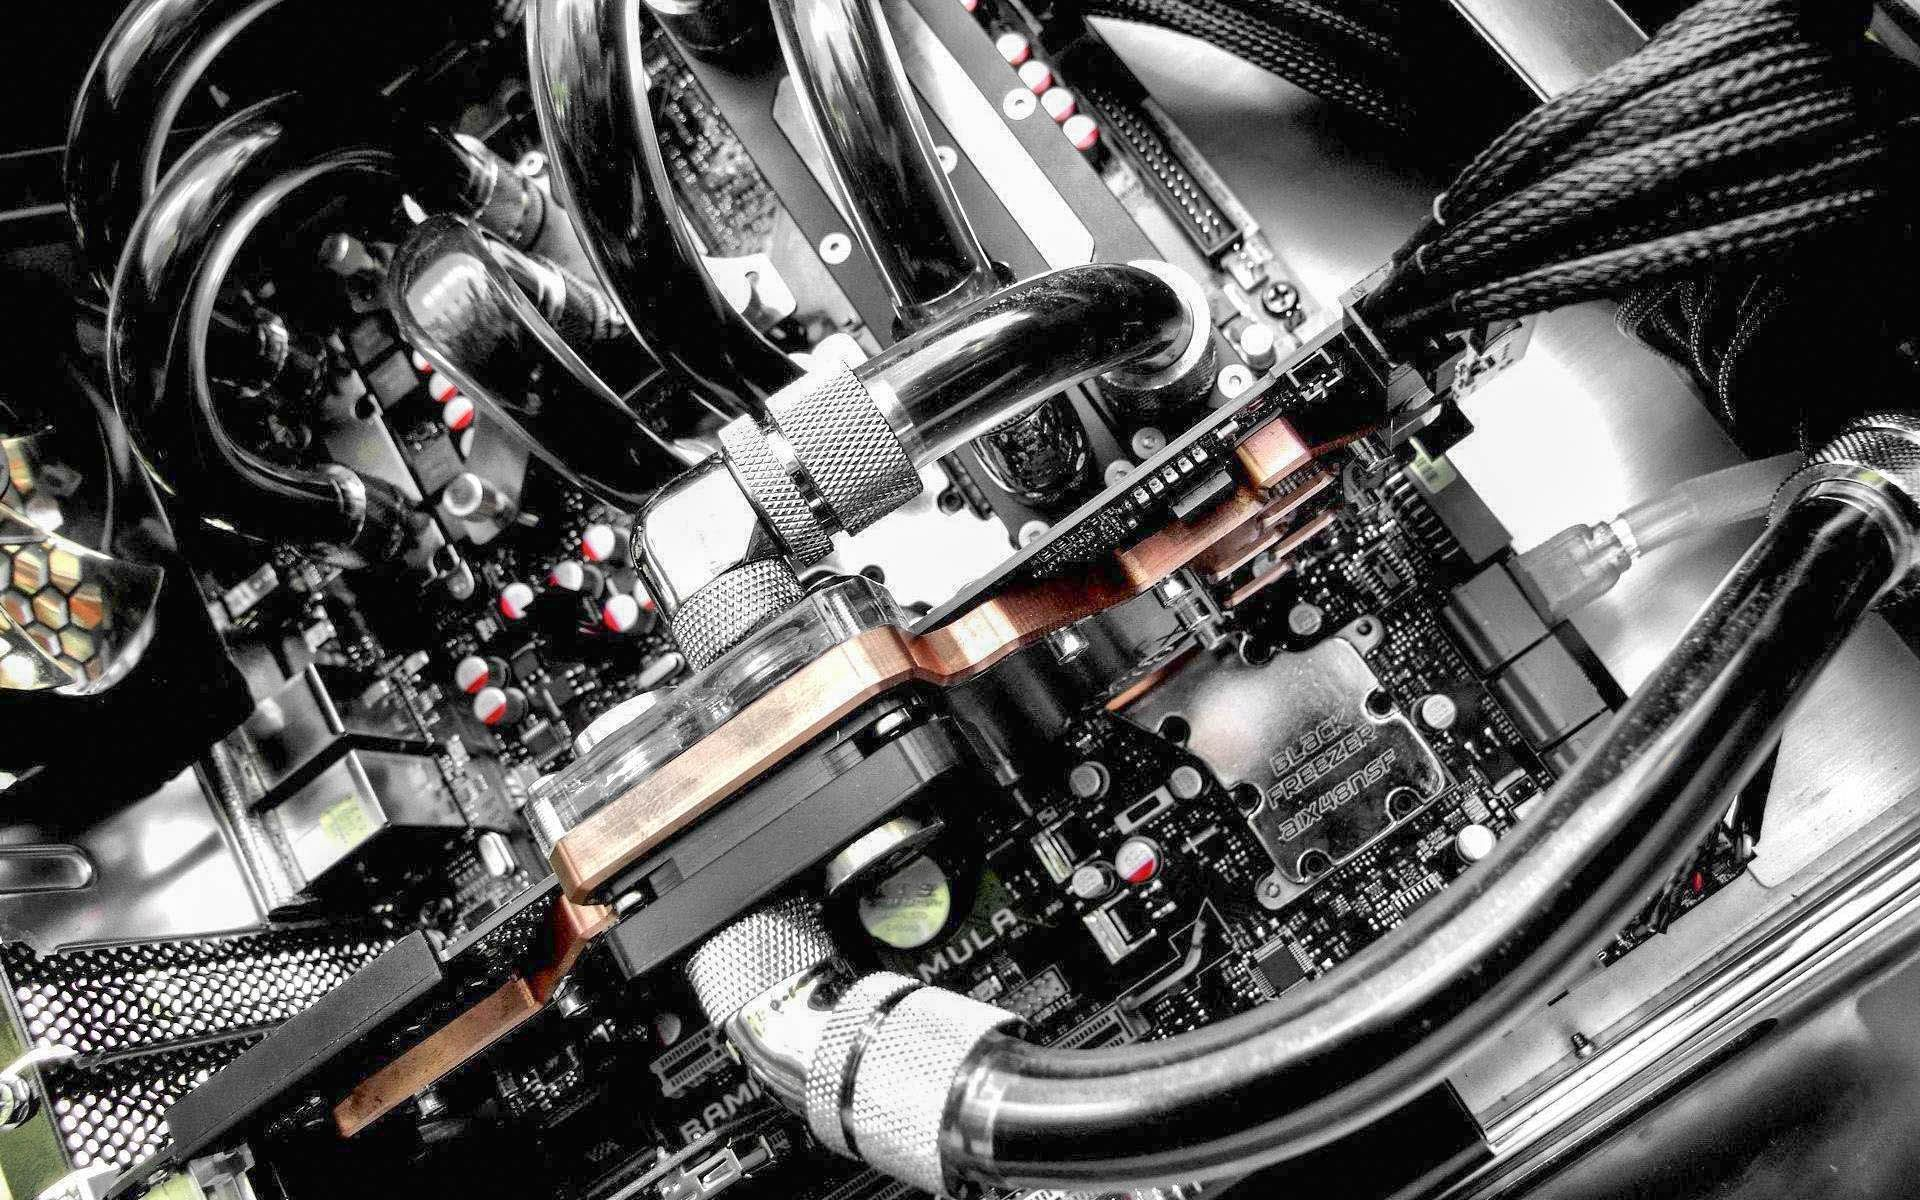 Hardware Wallpapers And Desktop Backgrounds All Hd Wallpapers Custom Built Computers Hd Wallpaper Desktop Background Themes